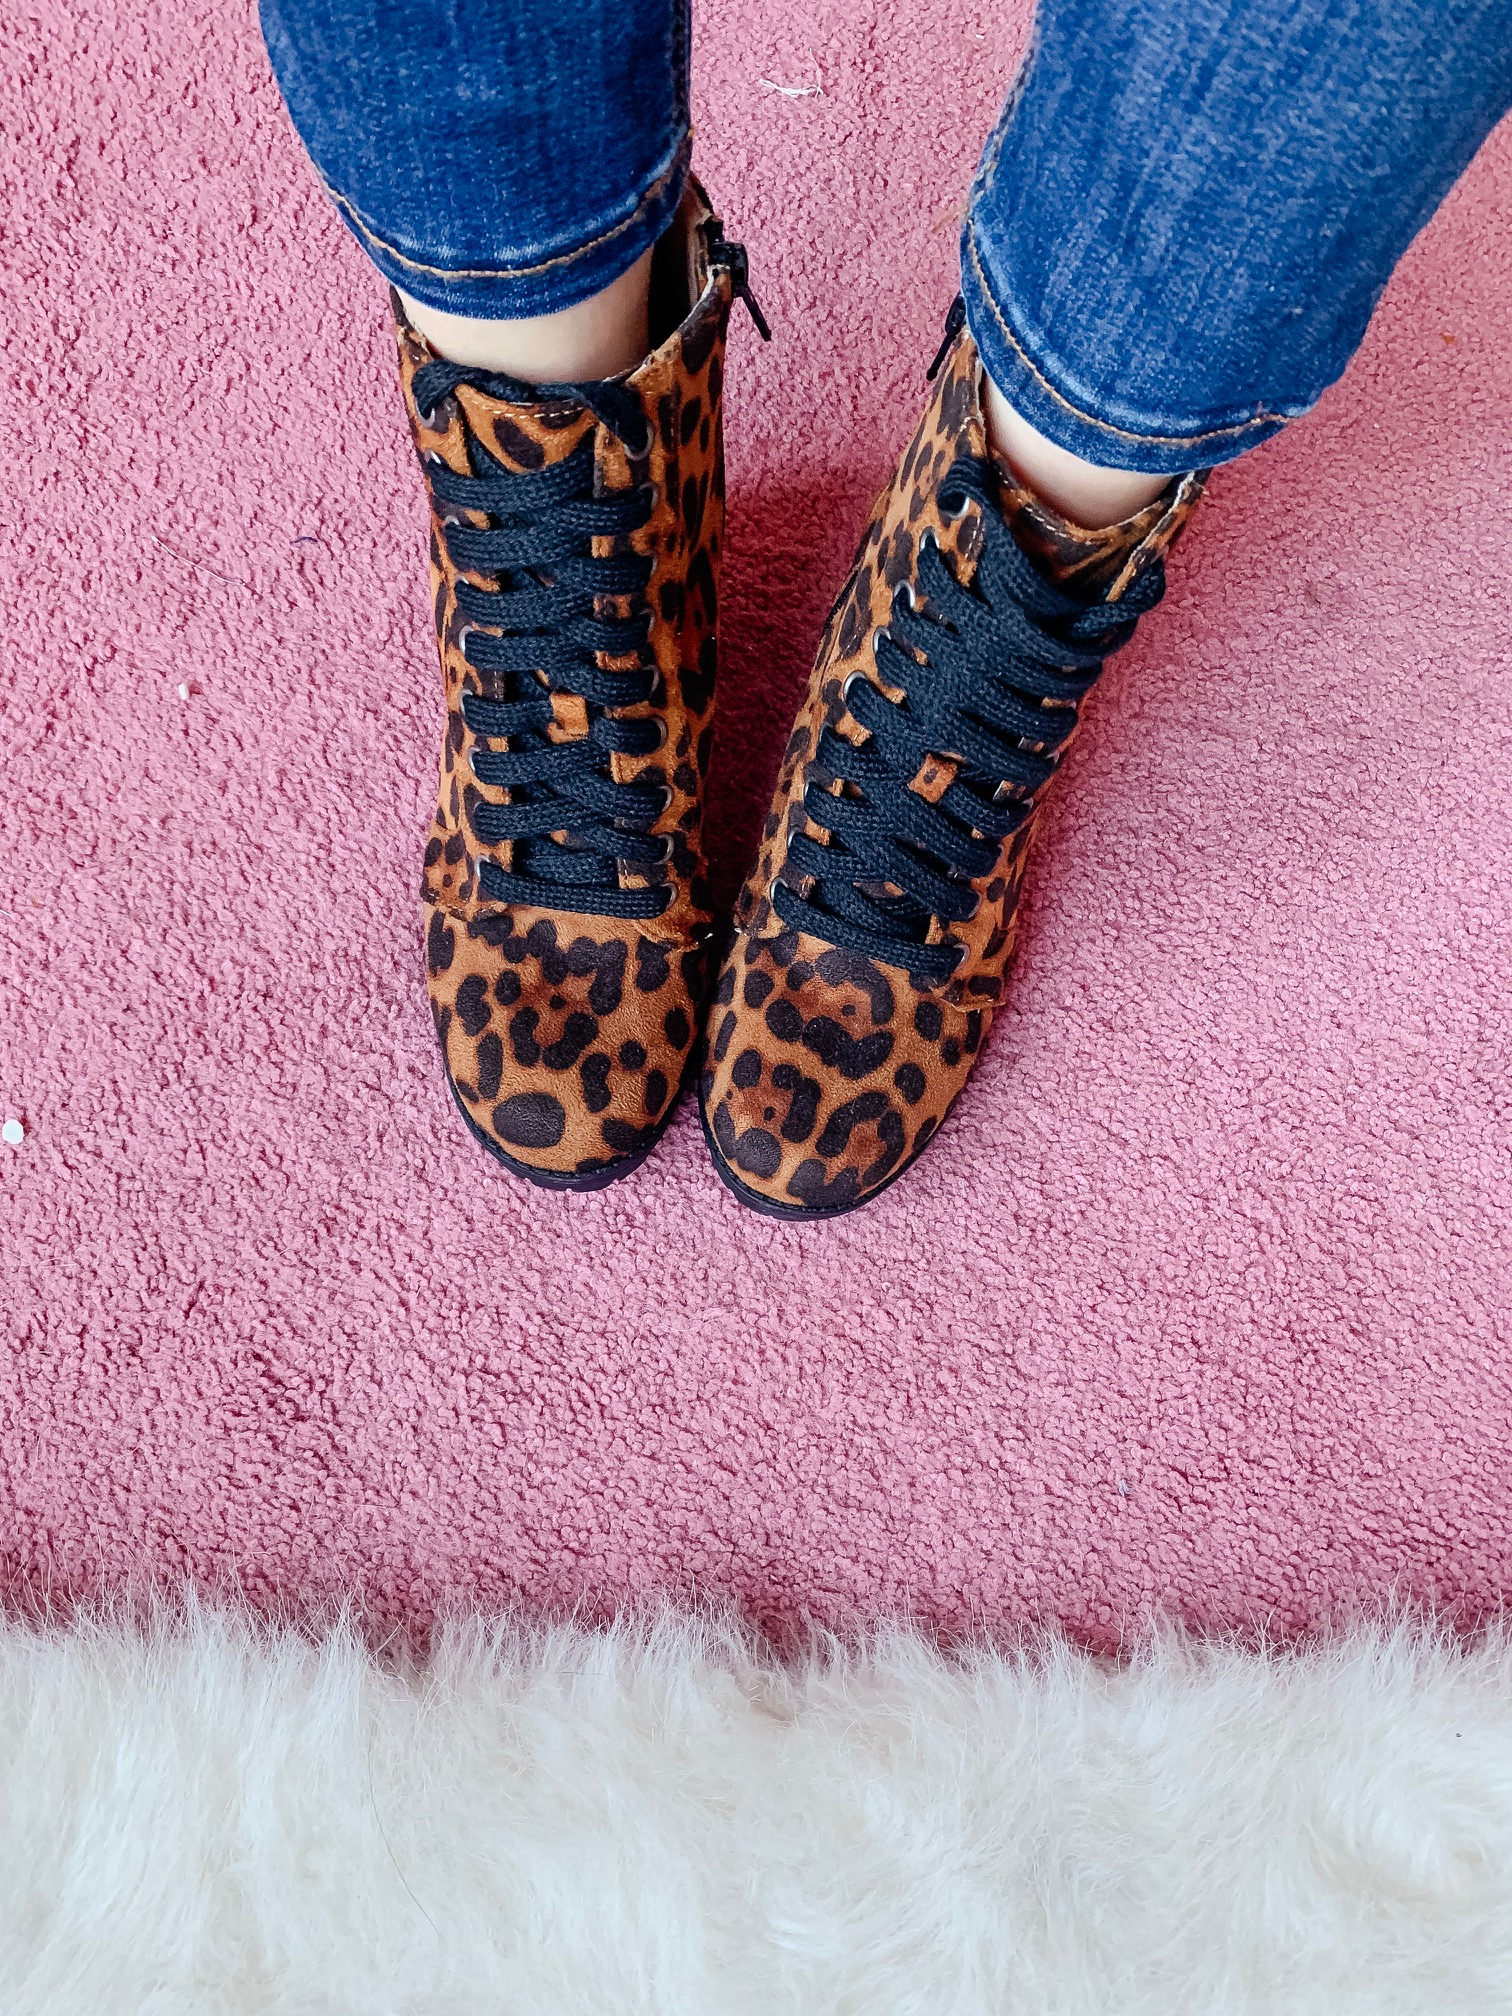 WALMART FALL HAUL - Everything under $35!!! - Leopard booties on Coming Up Roses